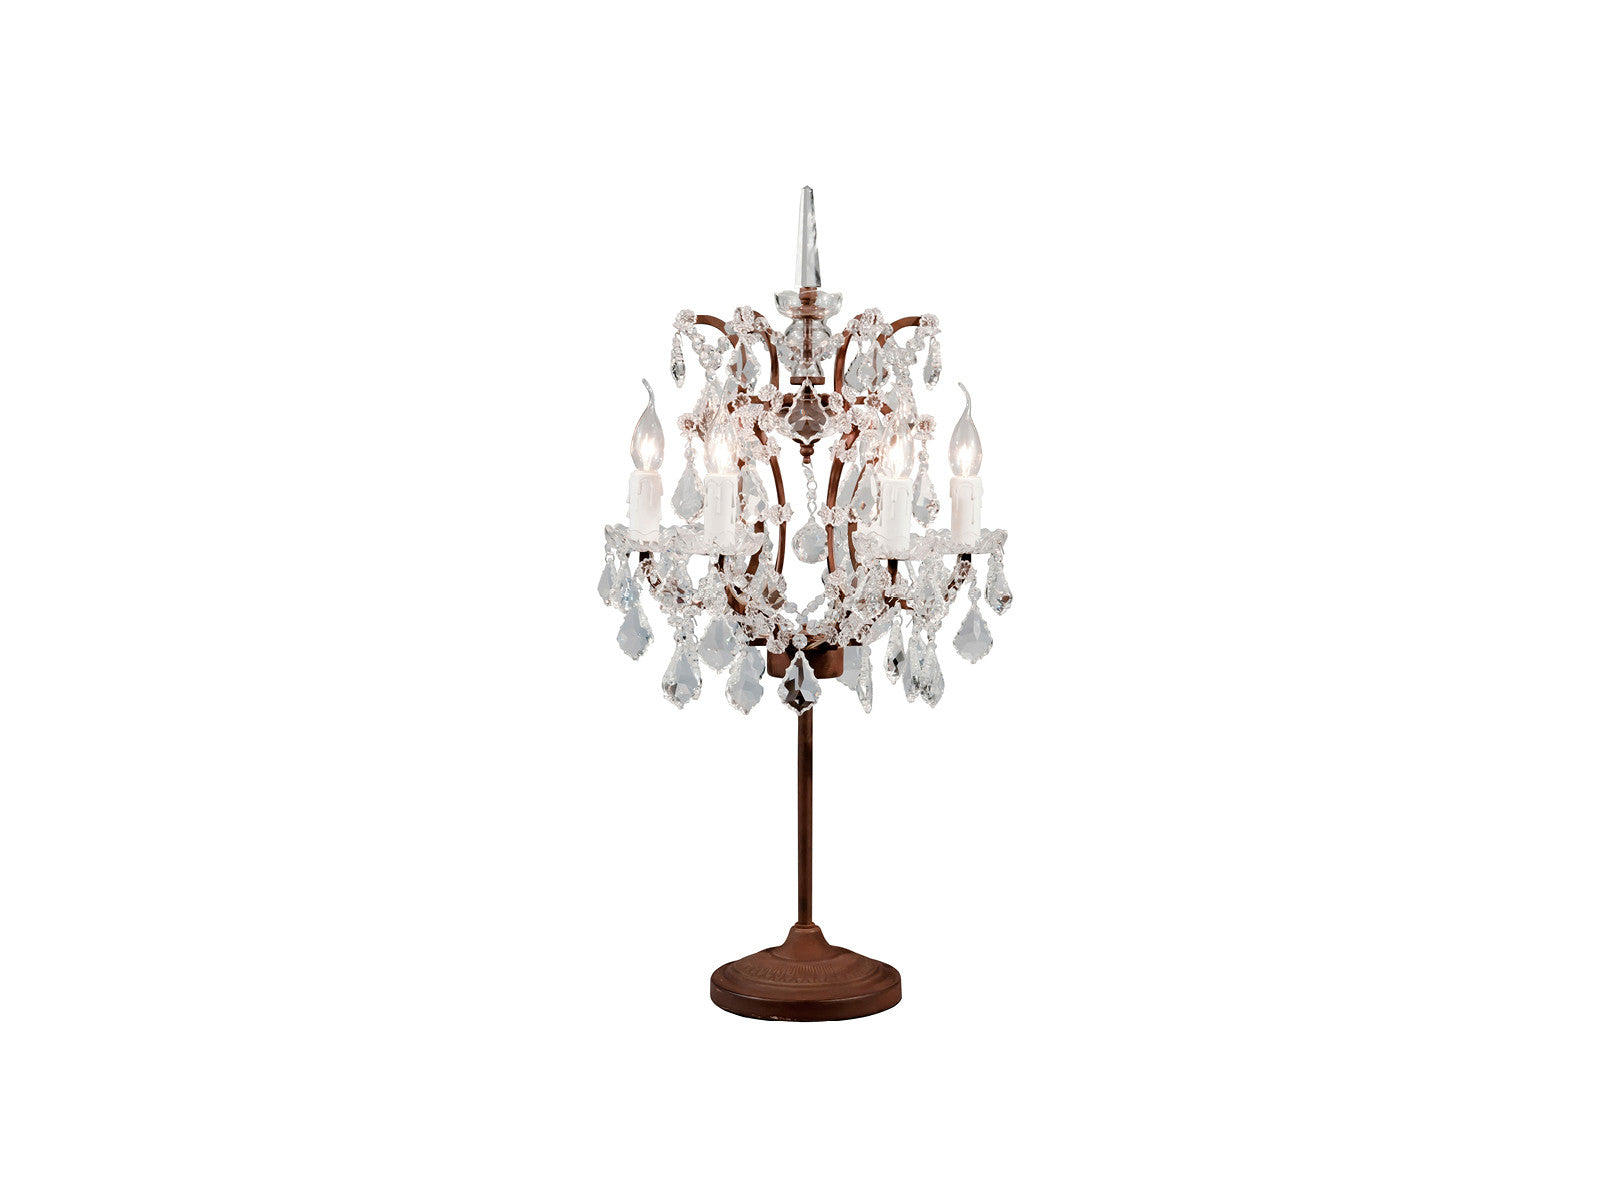 Crystal table lamp by timothy oulton dawson and co auckland crystaltablelamptimothyoultondawsonandco1 crystaltablelamptimothyoultondawsonandco1 crystaltablelamptimothyoultondawsonandco2 aloadofball Image collections